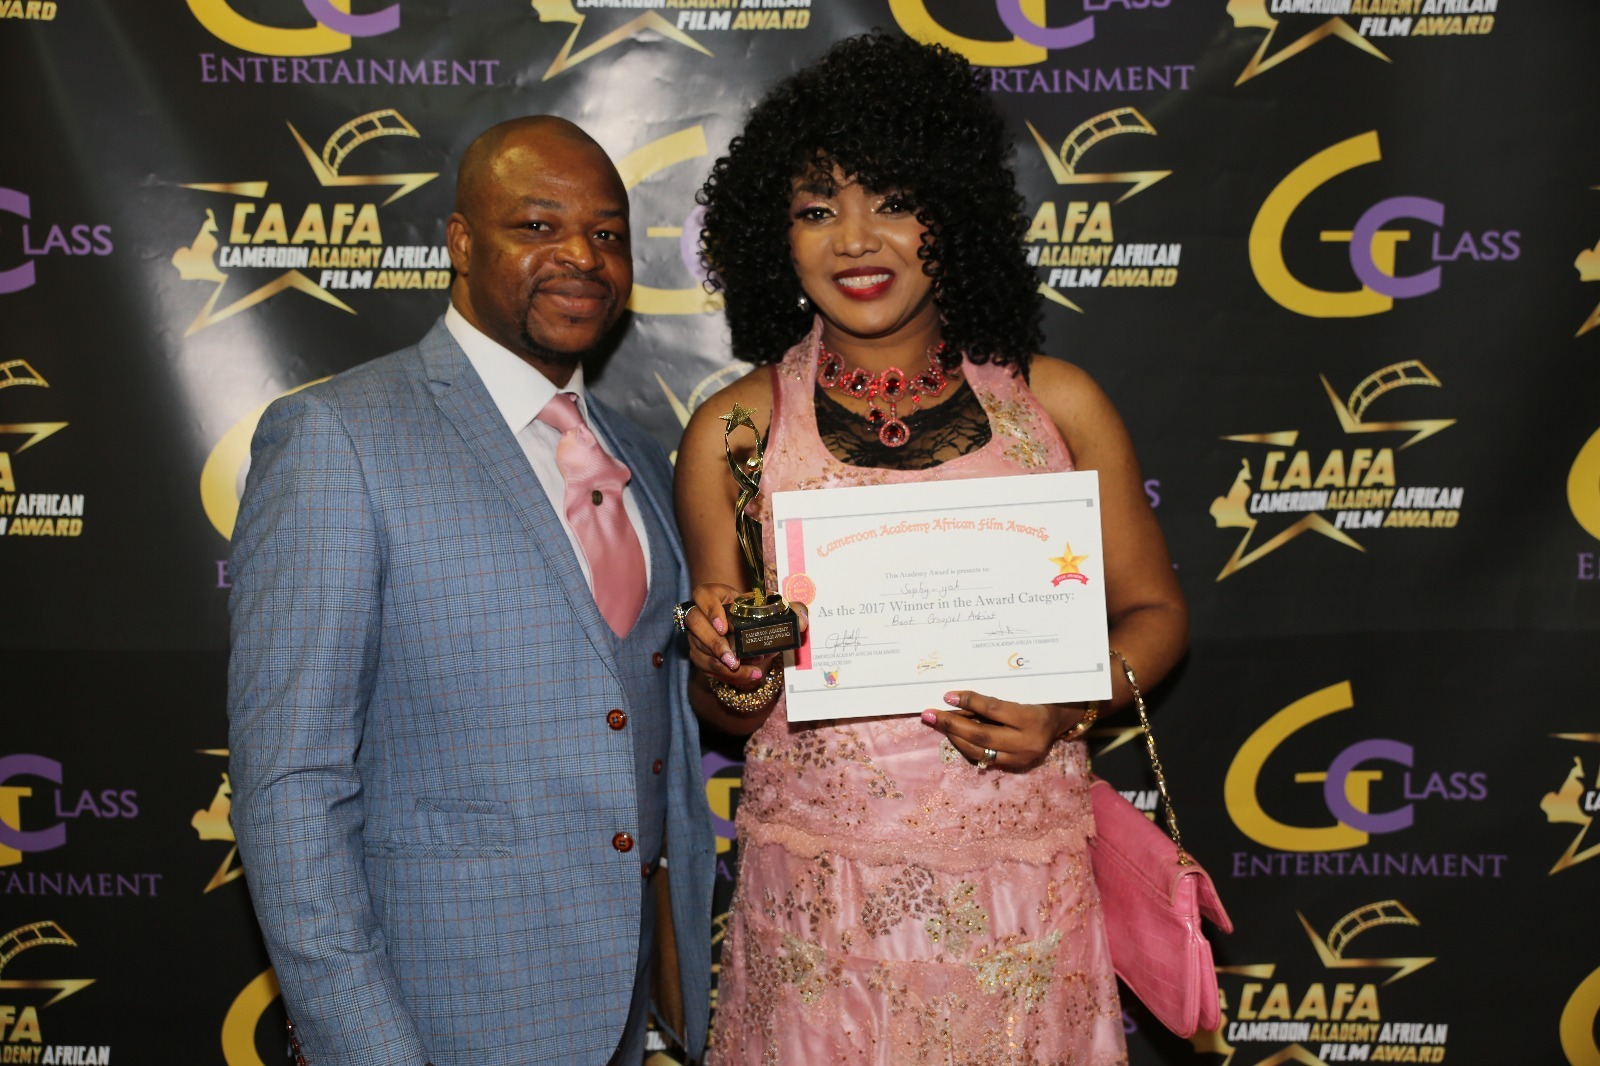 NOLLYWOOD STARS DOMINATES CAMEROON FILM AWARD